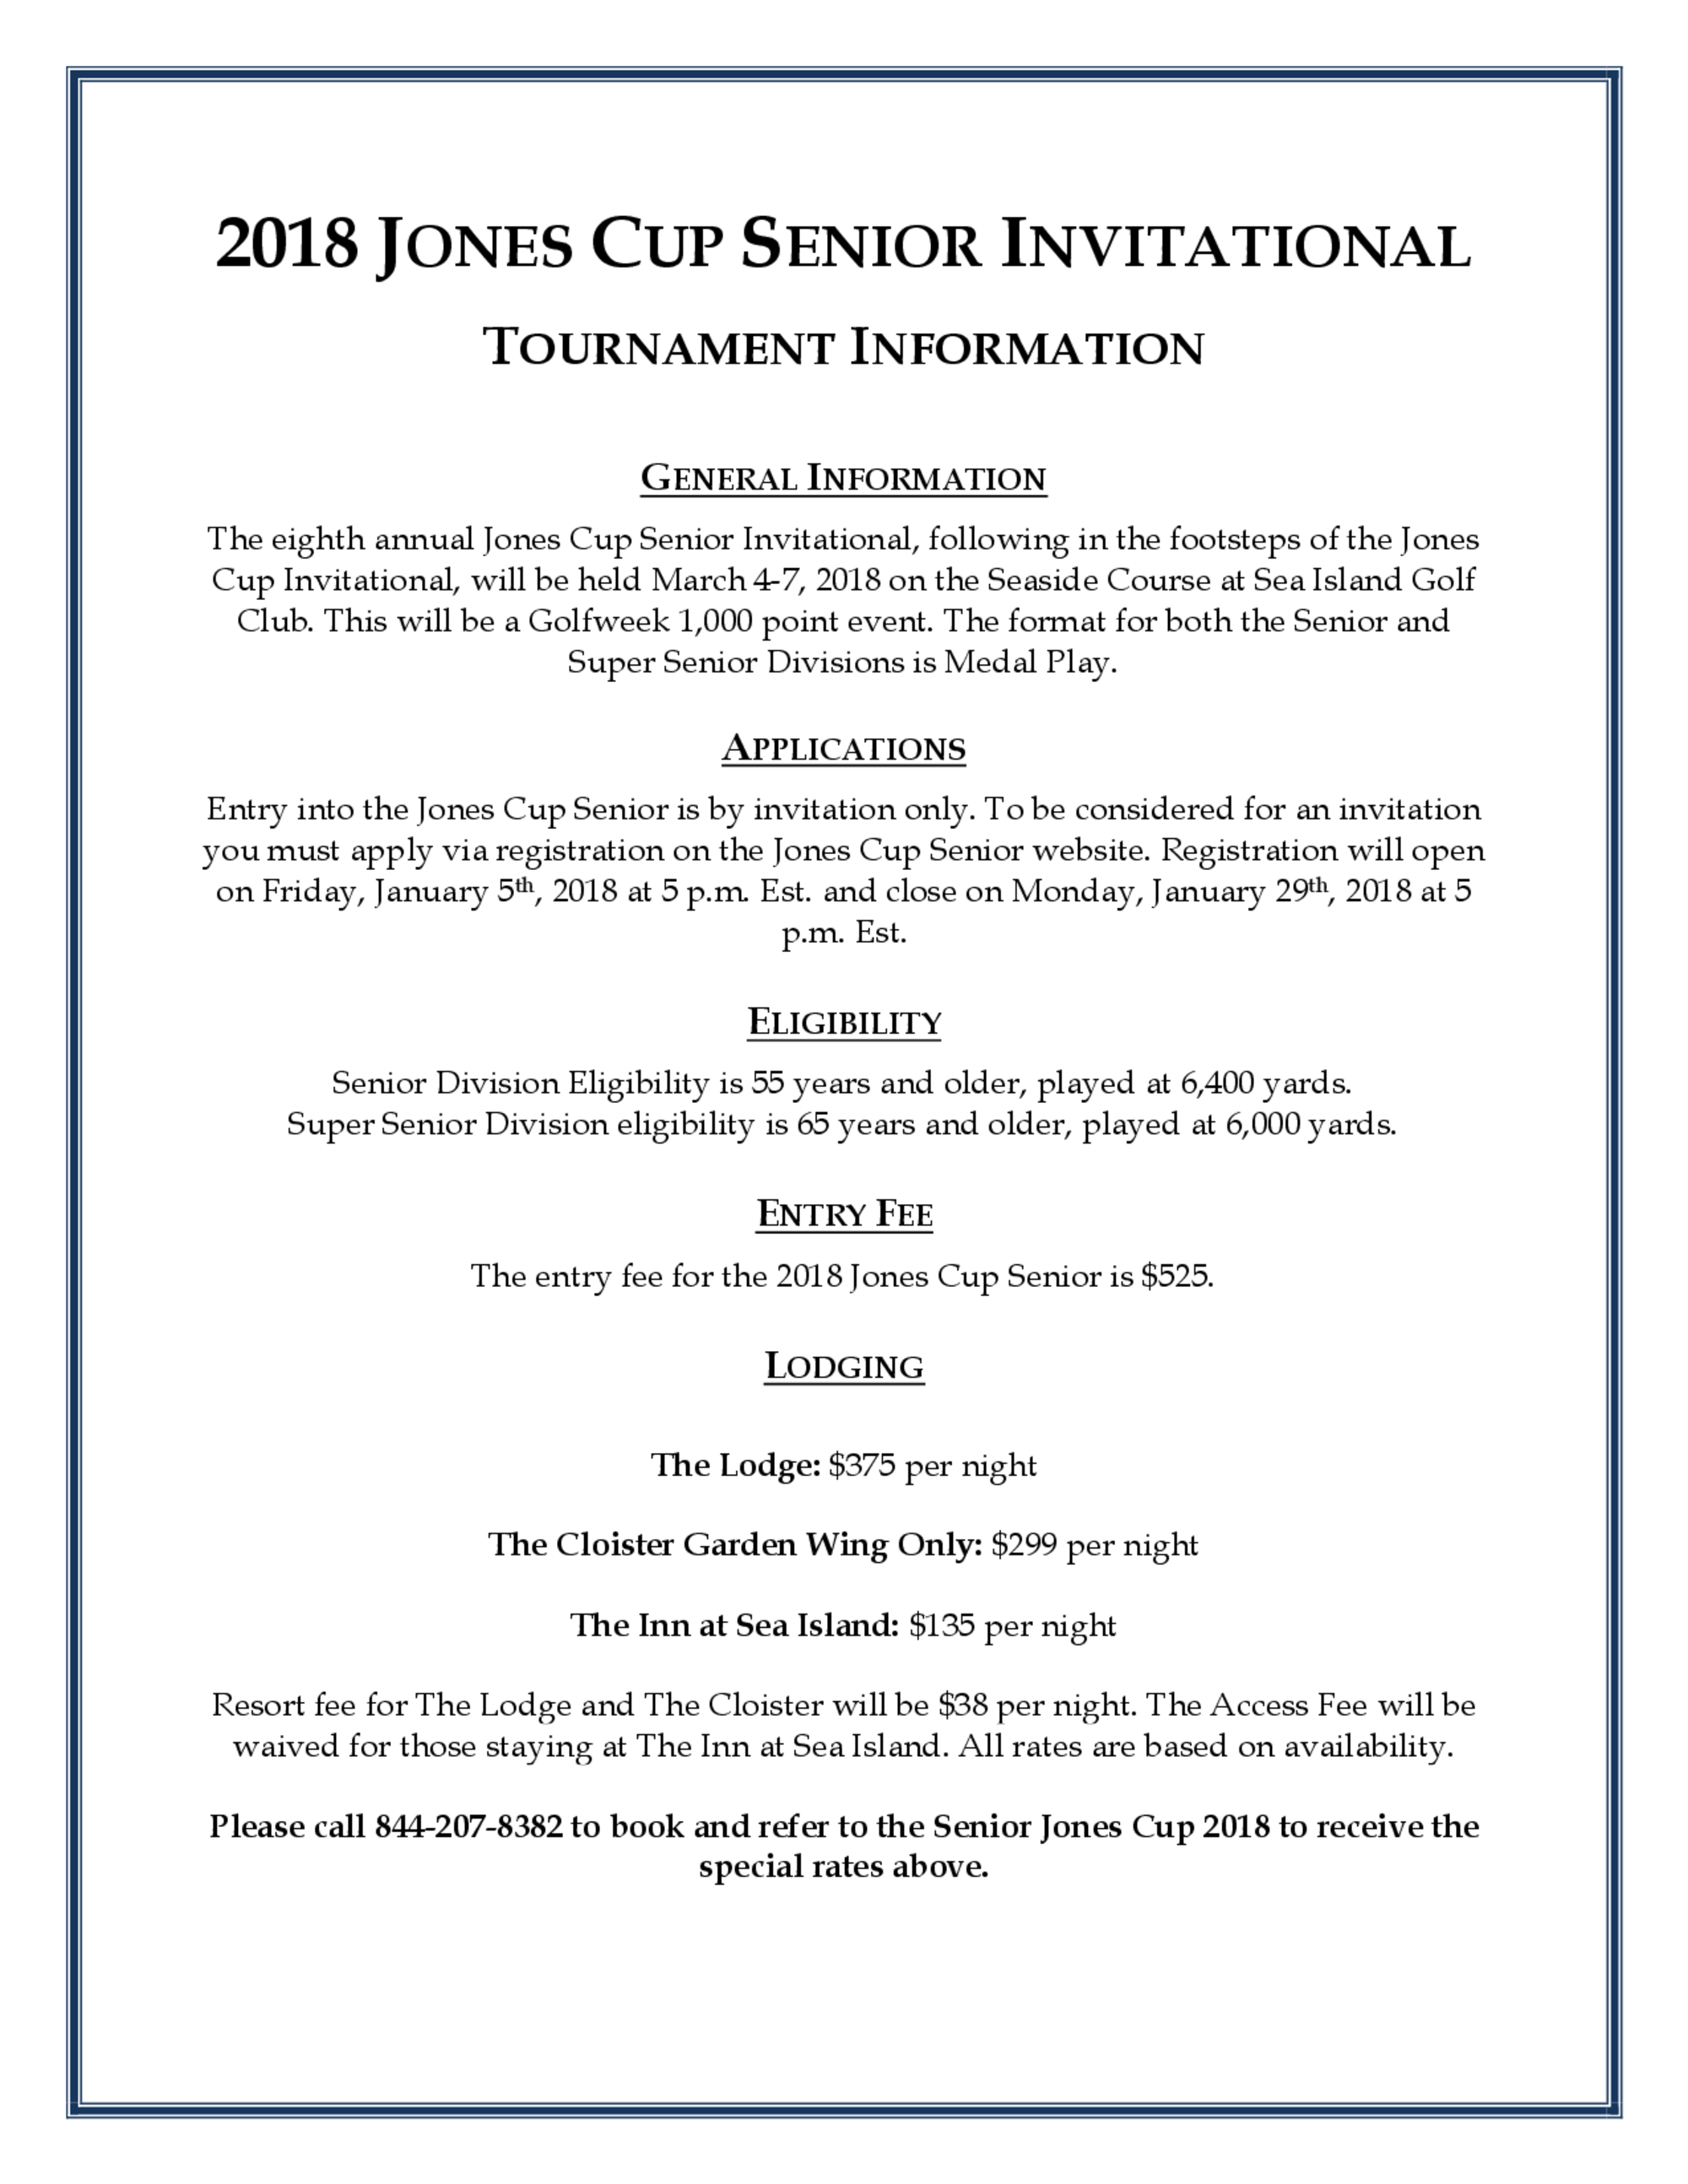 Tournament information 1